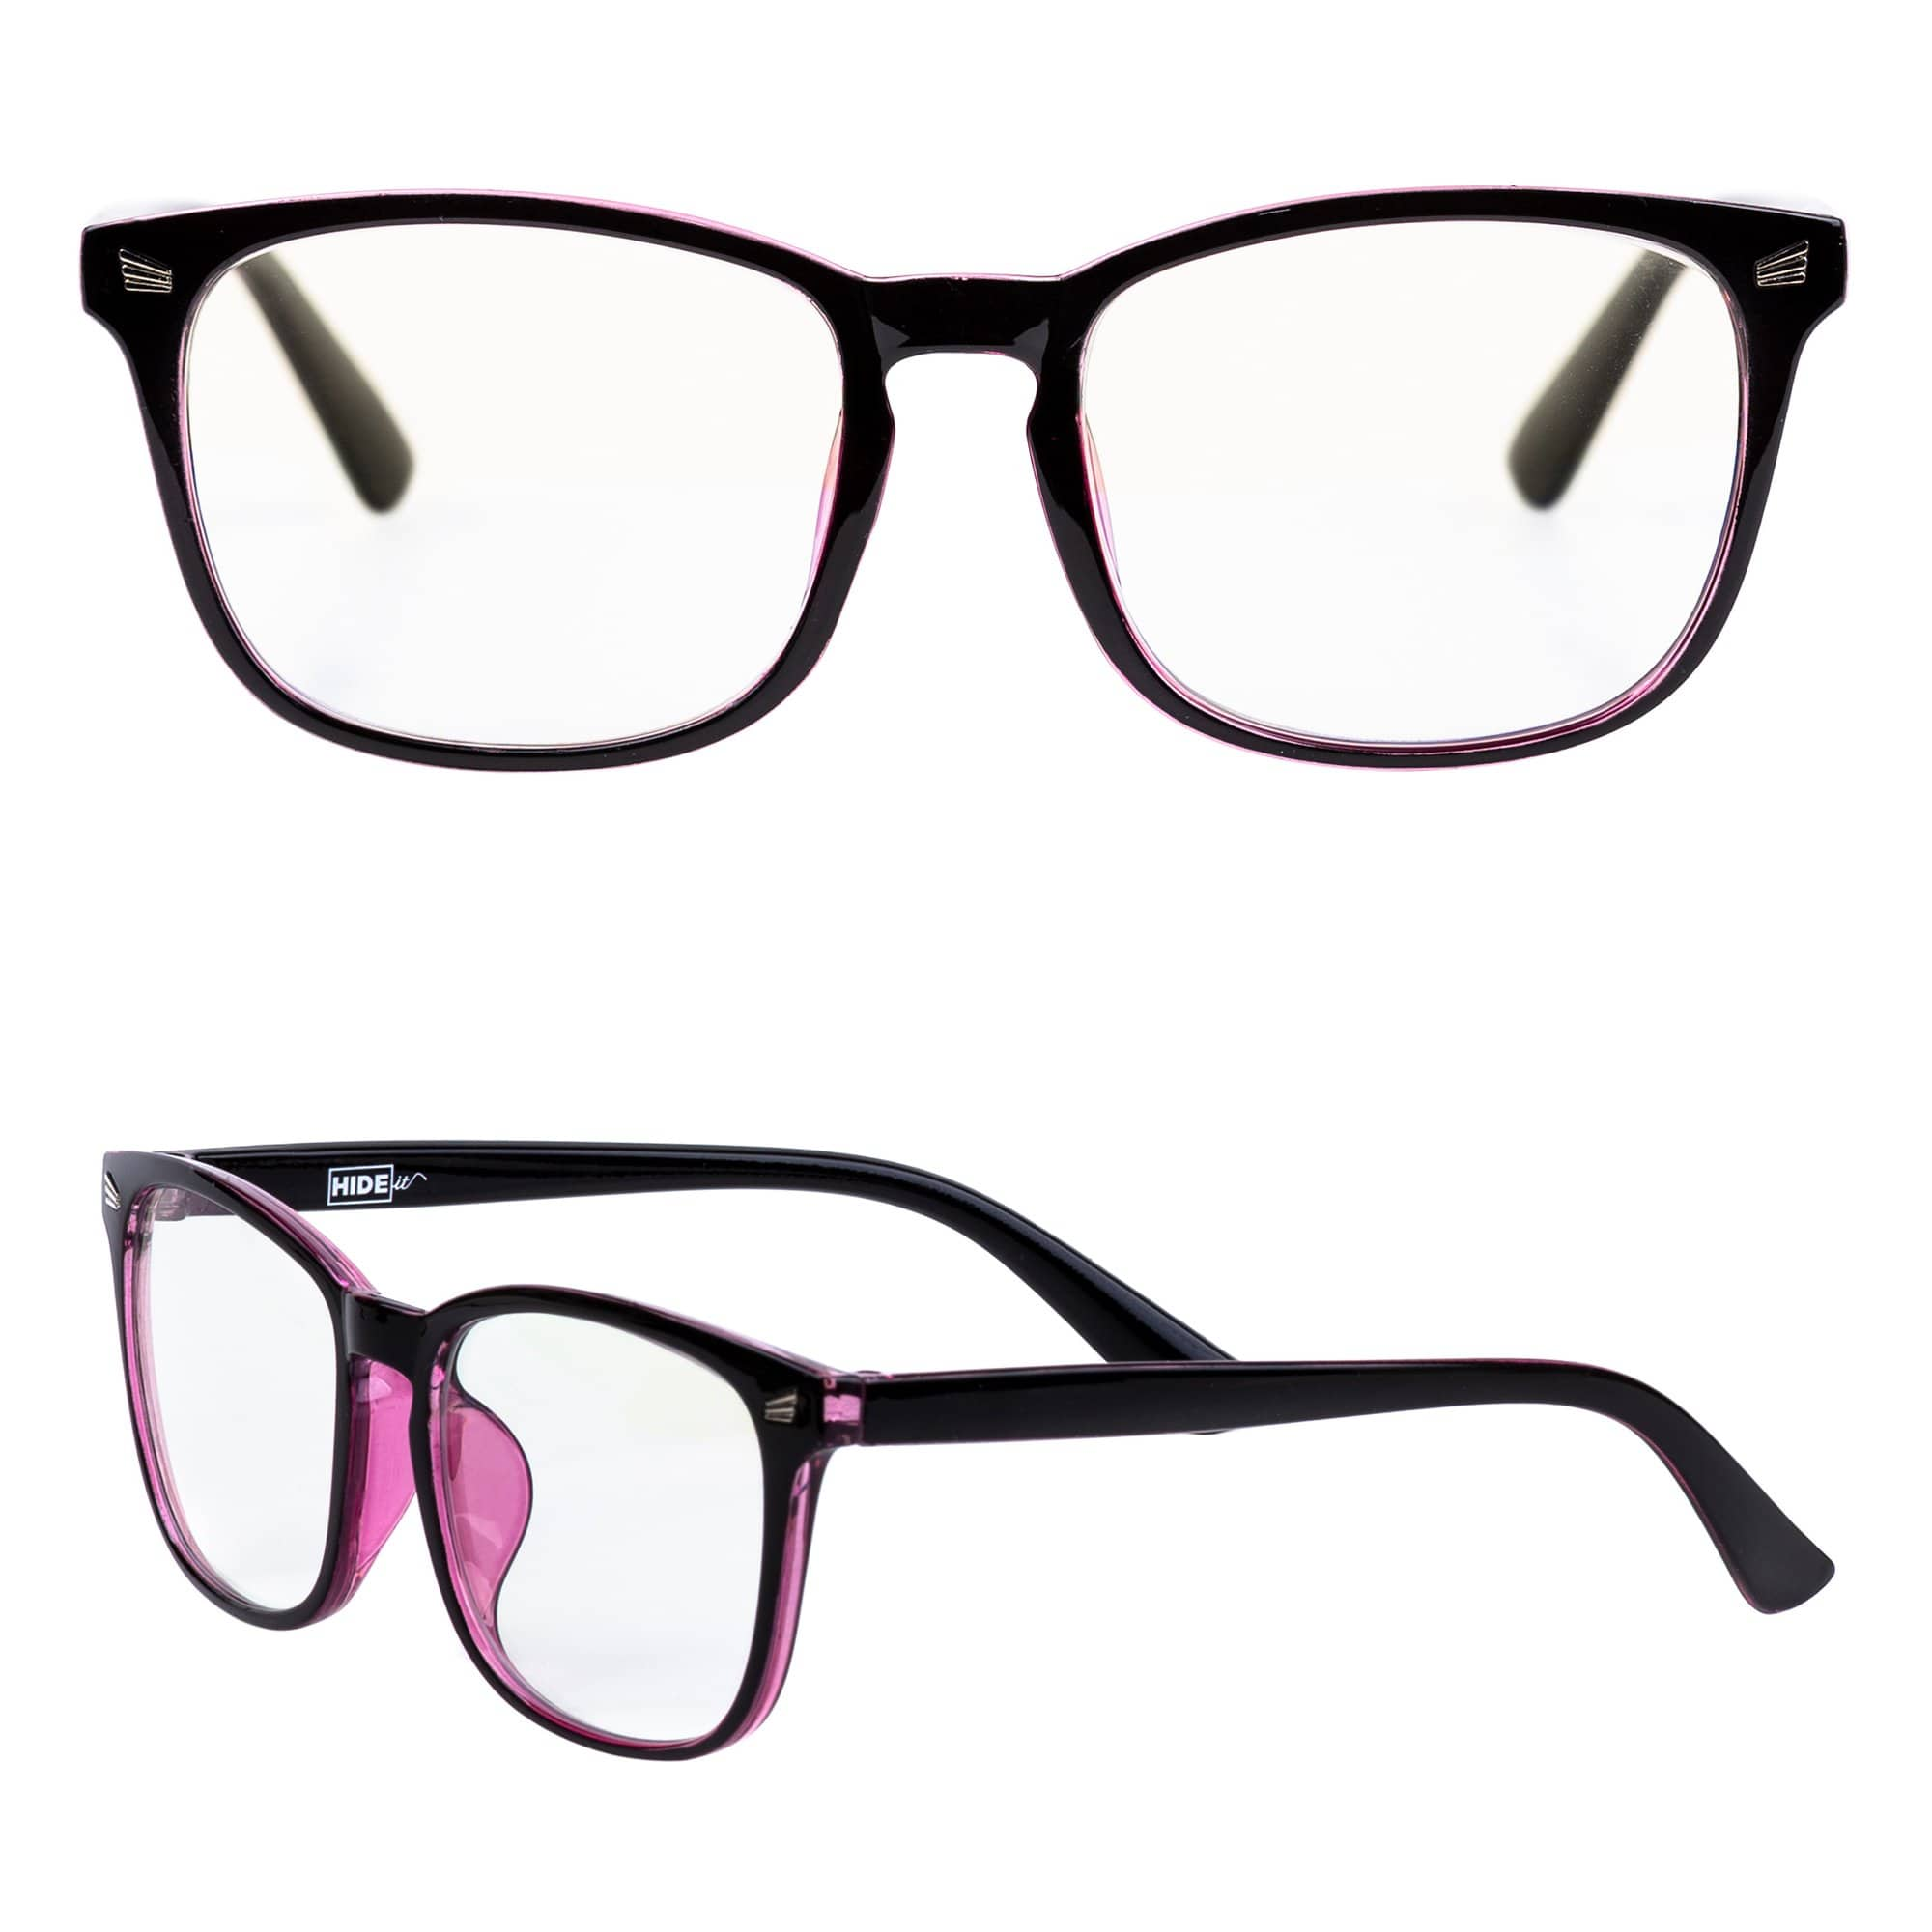 Black and pink blue light blocking glasses reduce eyestrain and headaches from blue light.